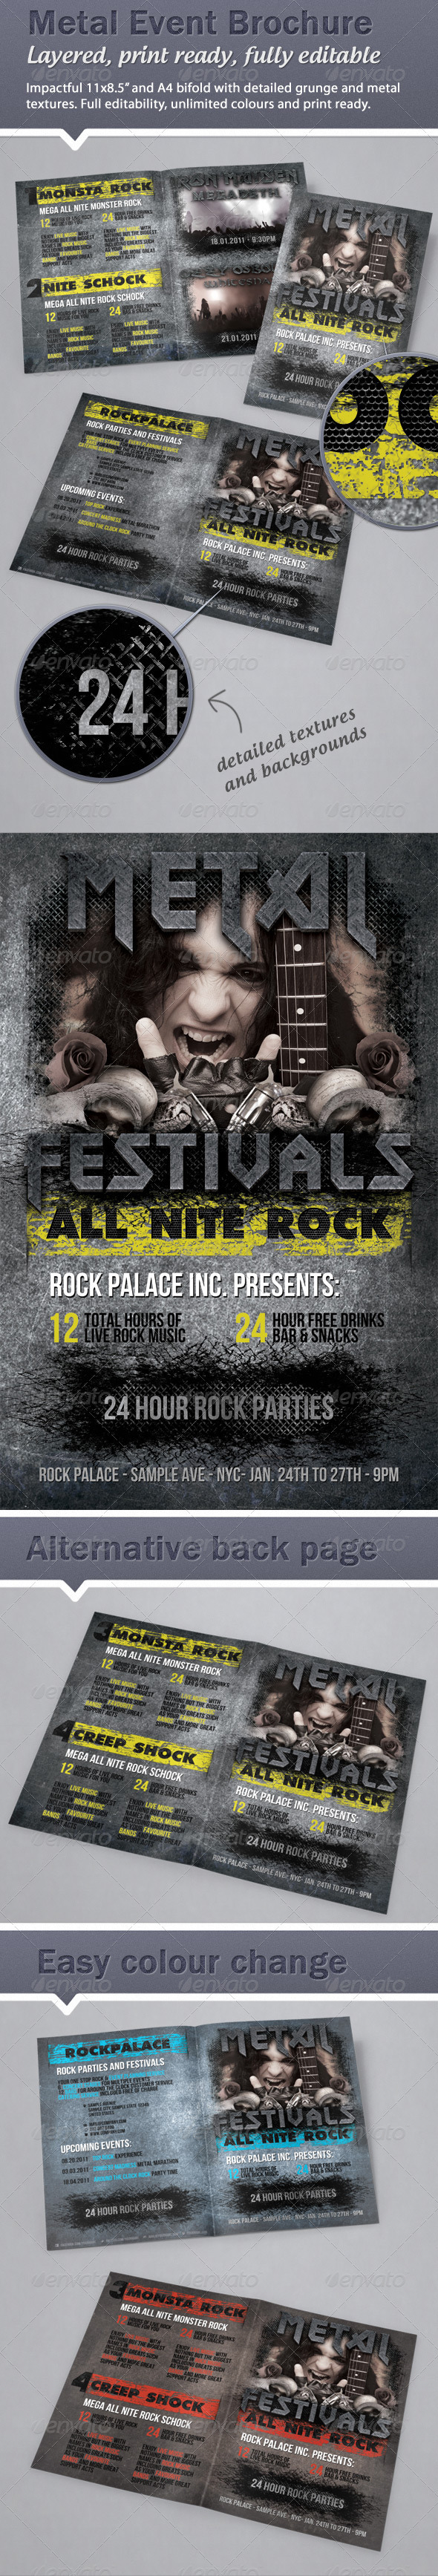 Heavy metal rock event Brochure 11x8.5 & A4